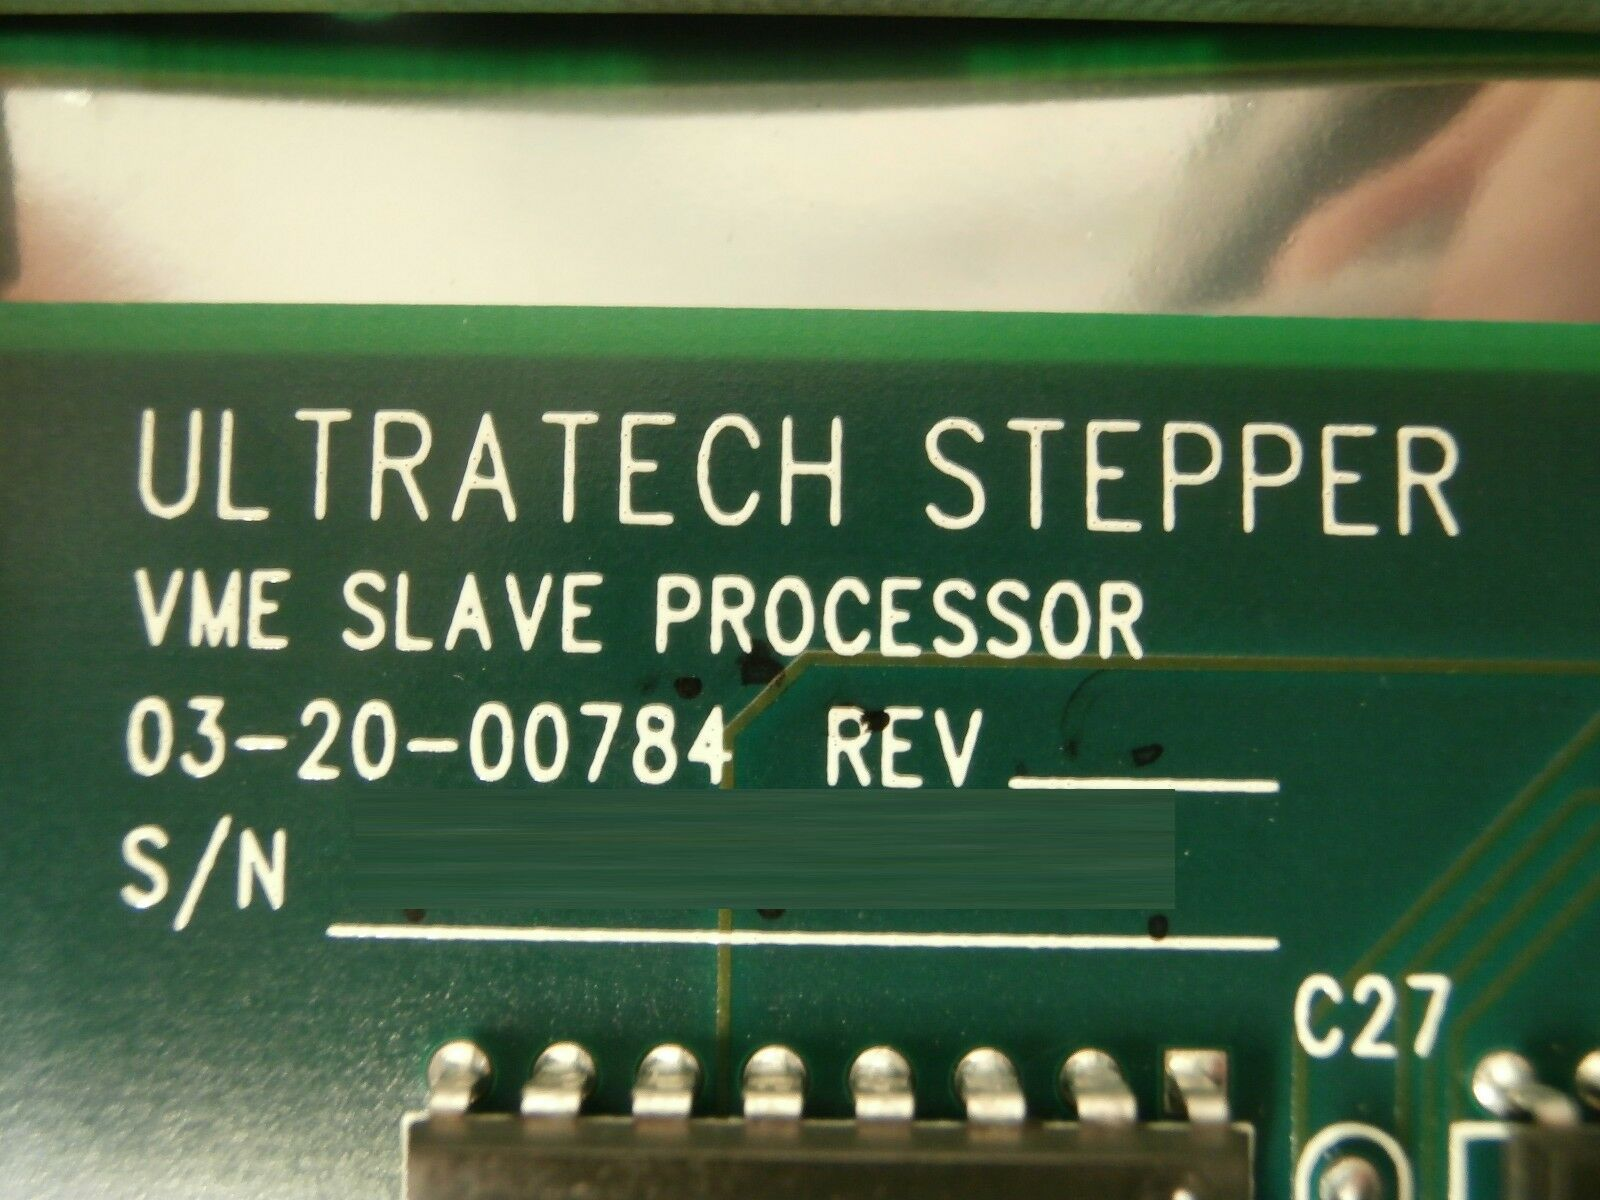 Ultratech Stepper 03-20-01403-11 VME 5 Axis Stage ASH PCB Card 4700 Titan